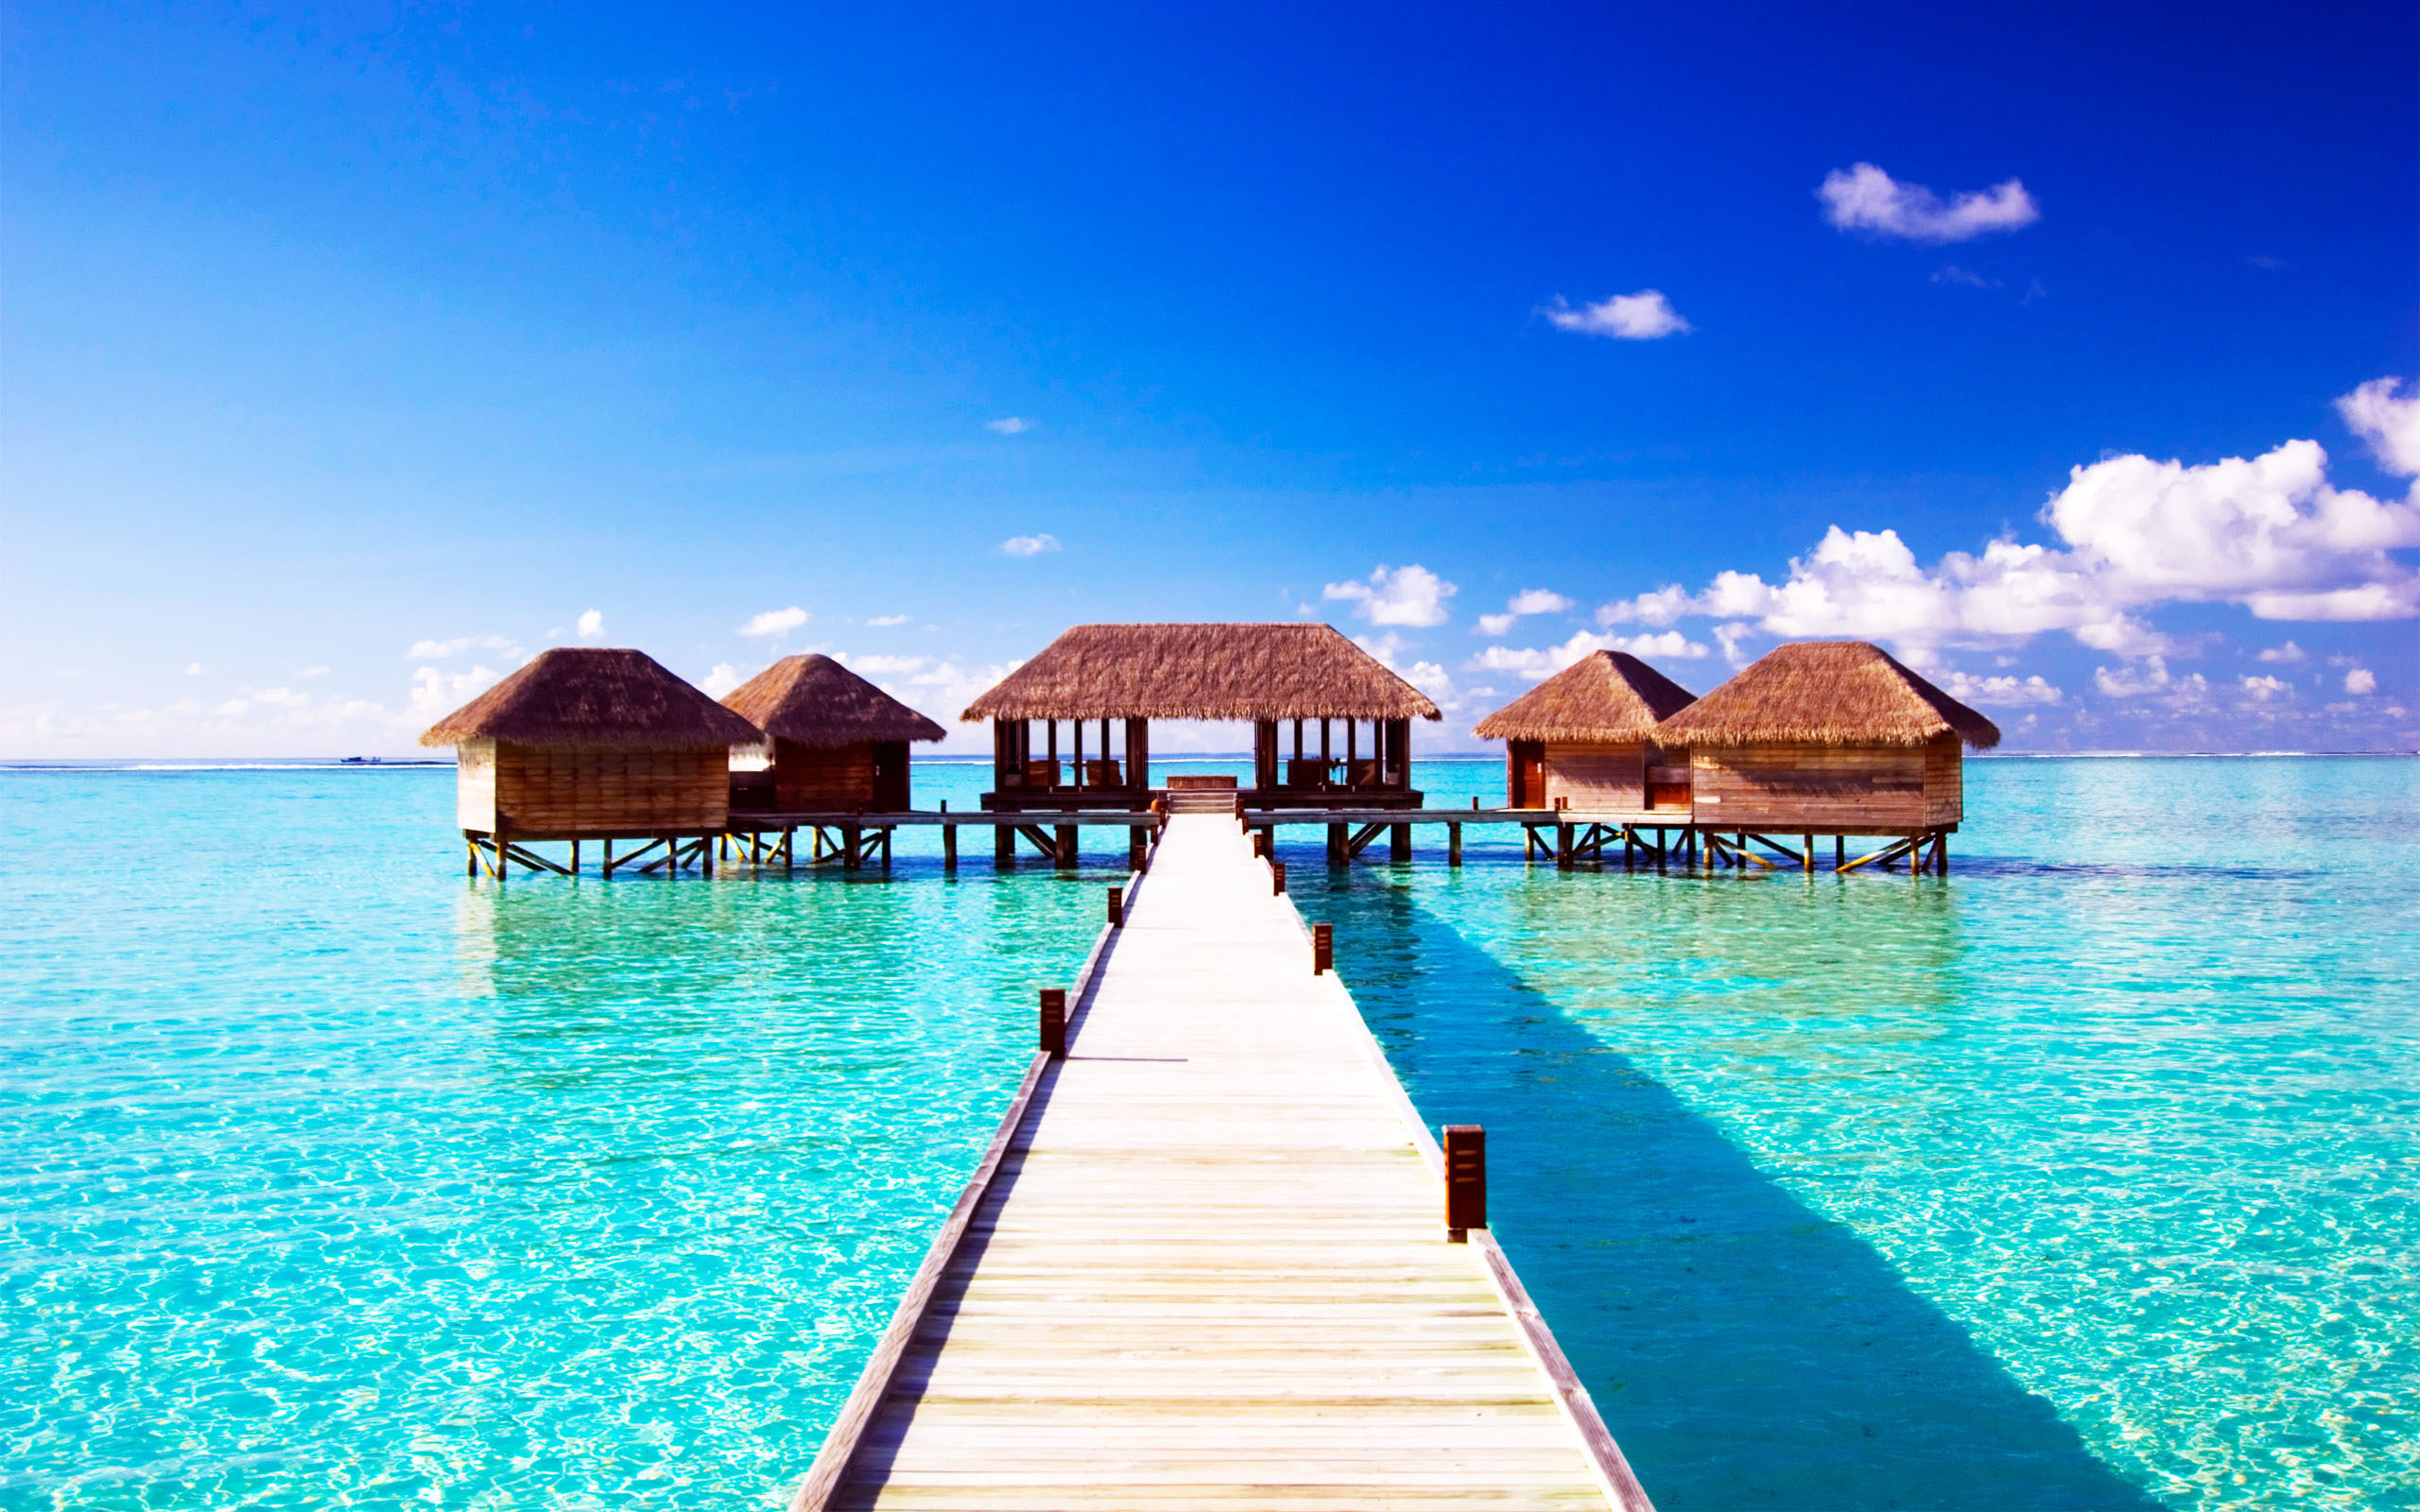 Widescreen Maldive Islands Images | Spring Loveday, 2560x1600